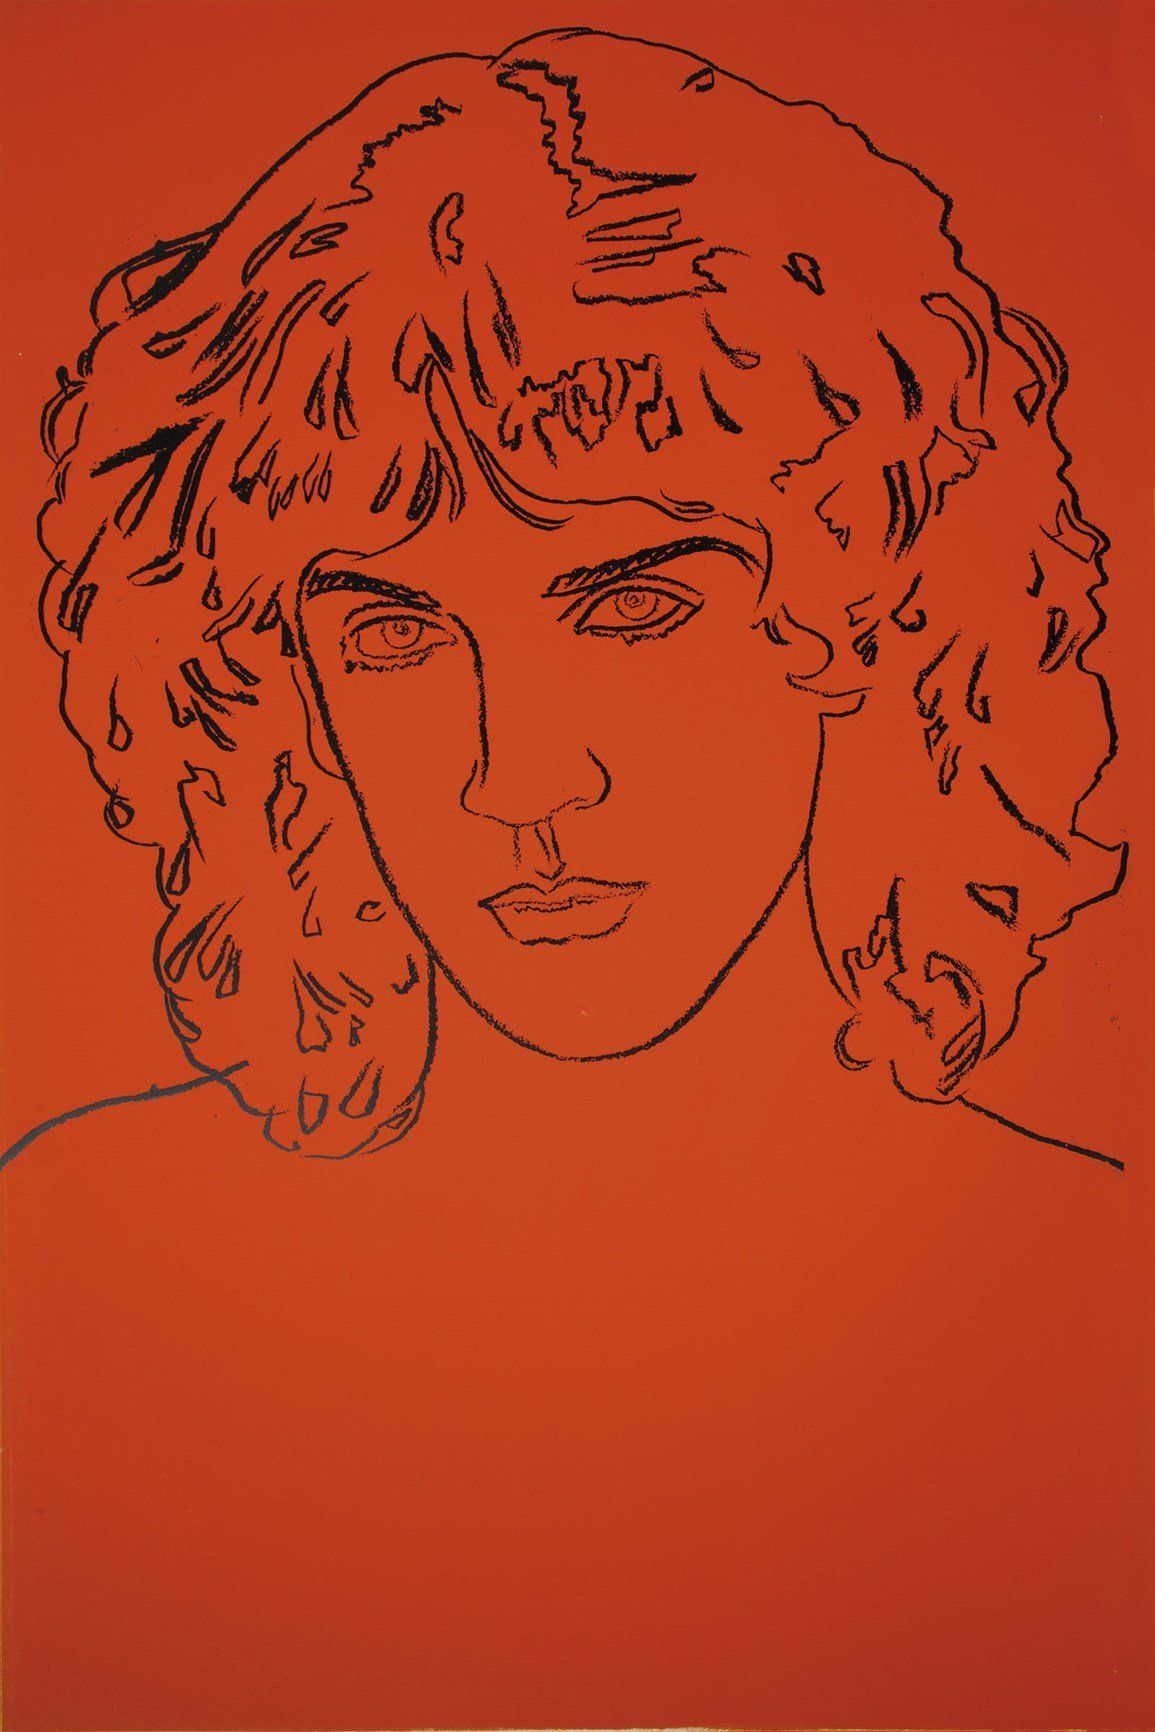 Andy Warhol, Billy Squier, 1982